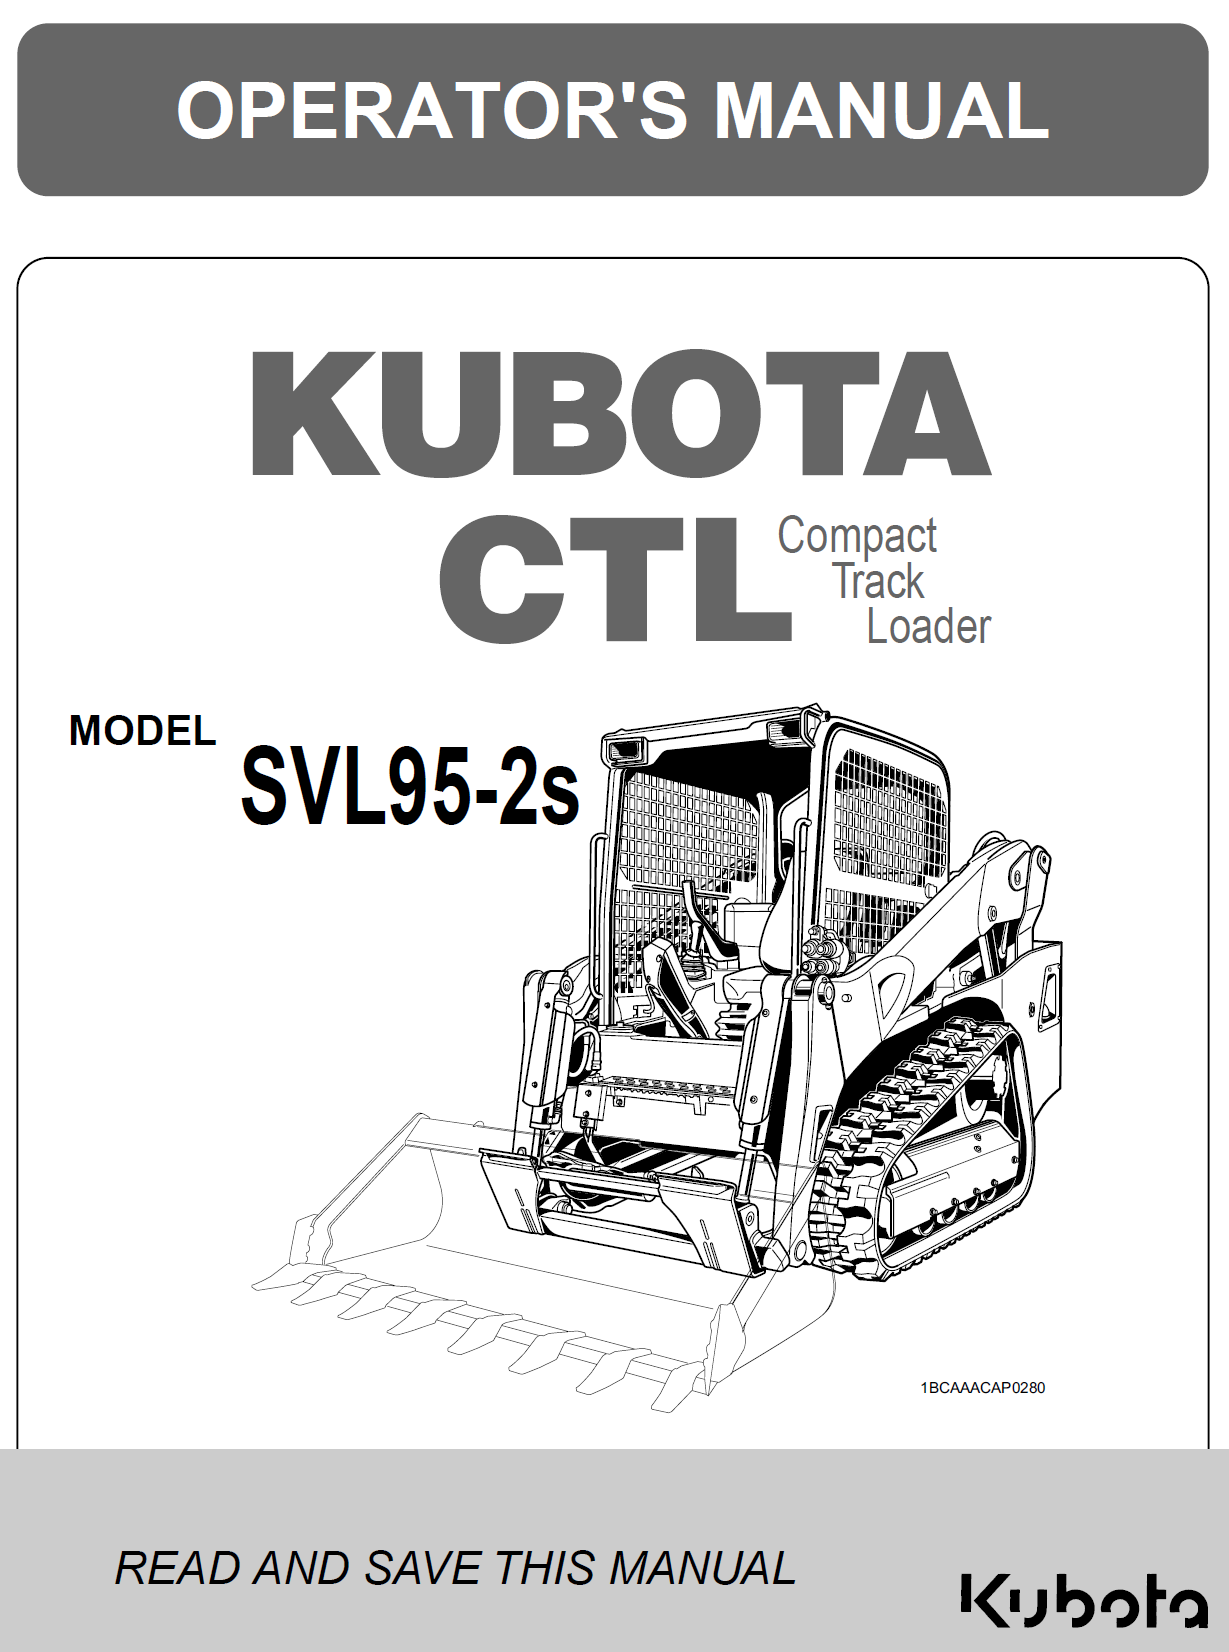 Kubota SVL95-2S Operator's Manual | Garton Tractor | California | Kubota &  New Holland Tractors Equipment